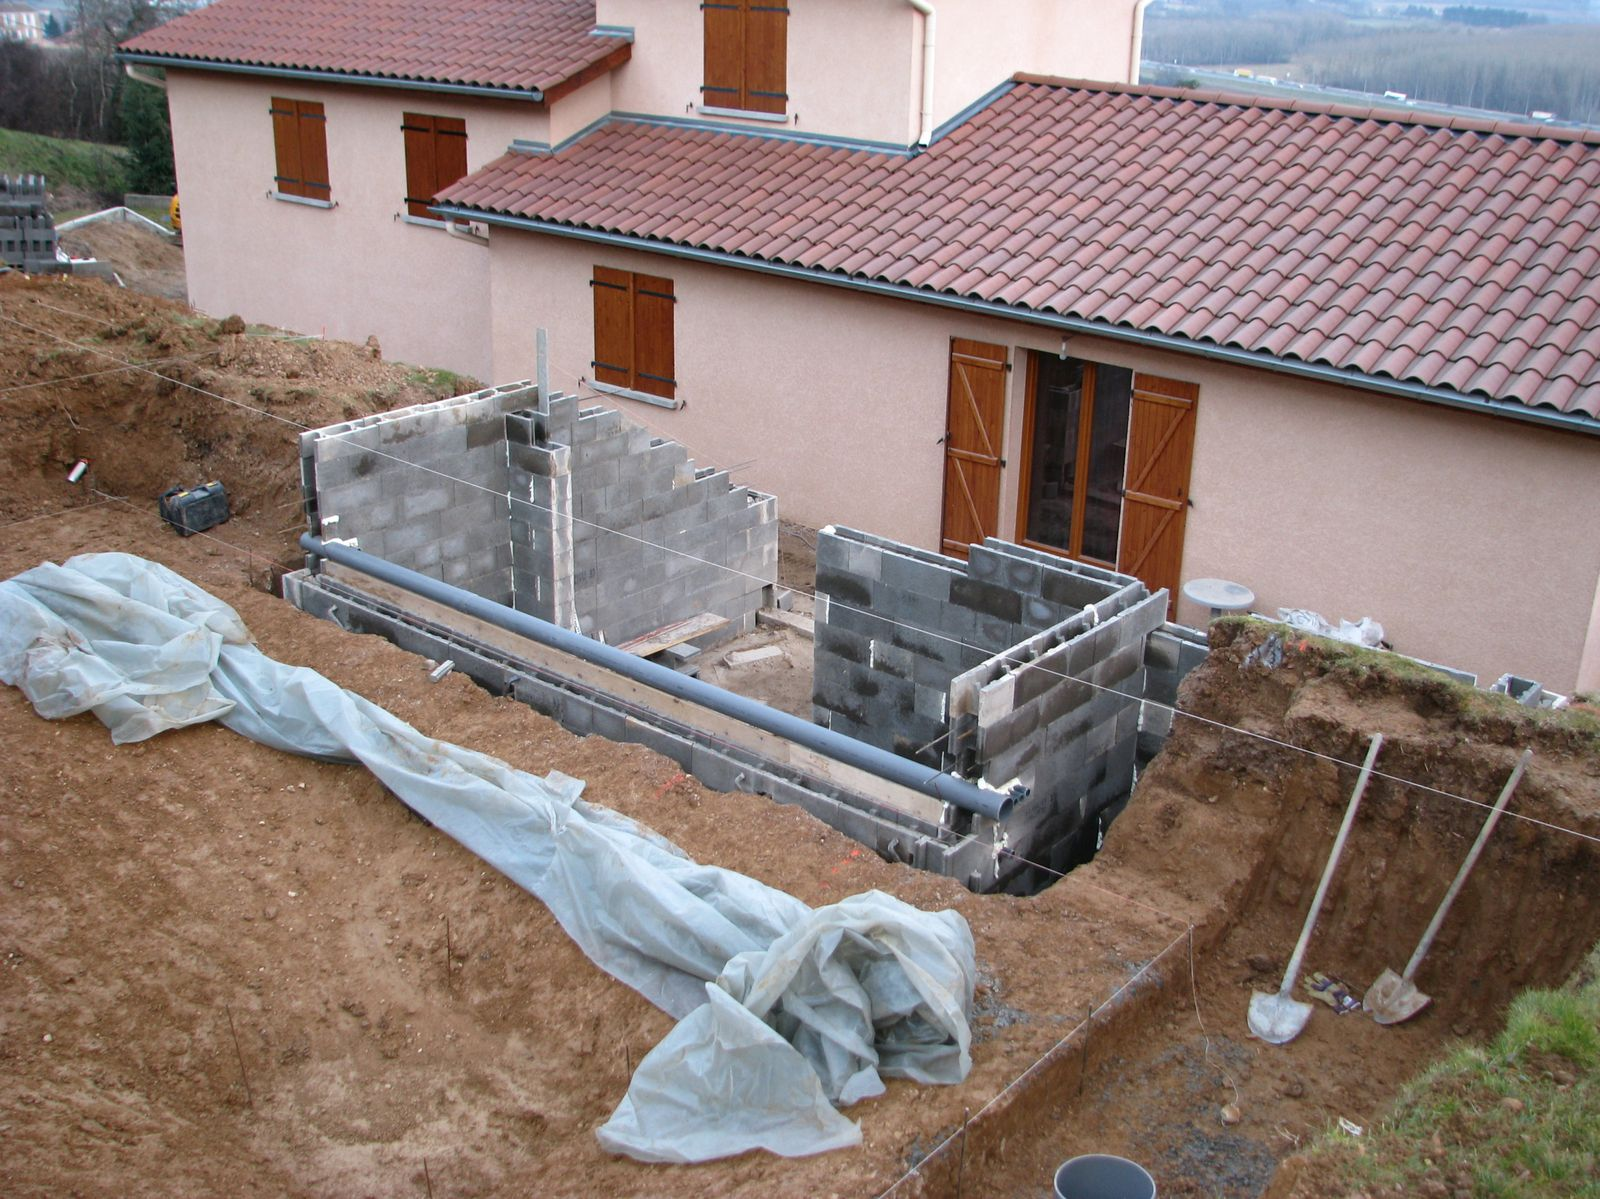 Construire piscine beton construction de piscines en b for Construction piscine beton